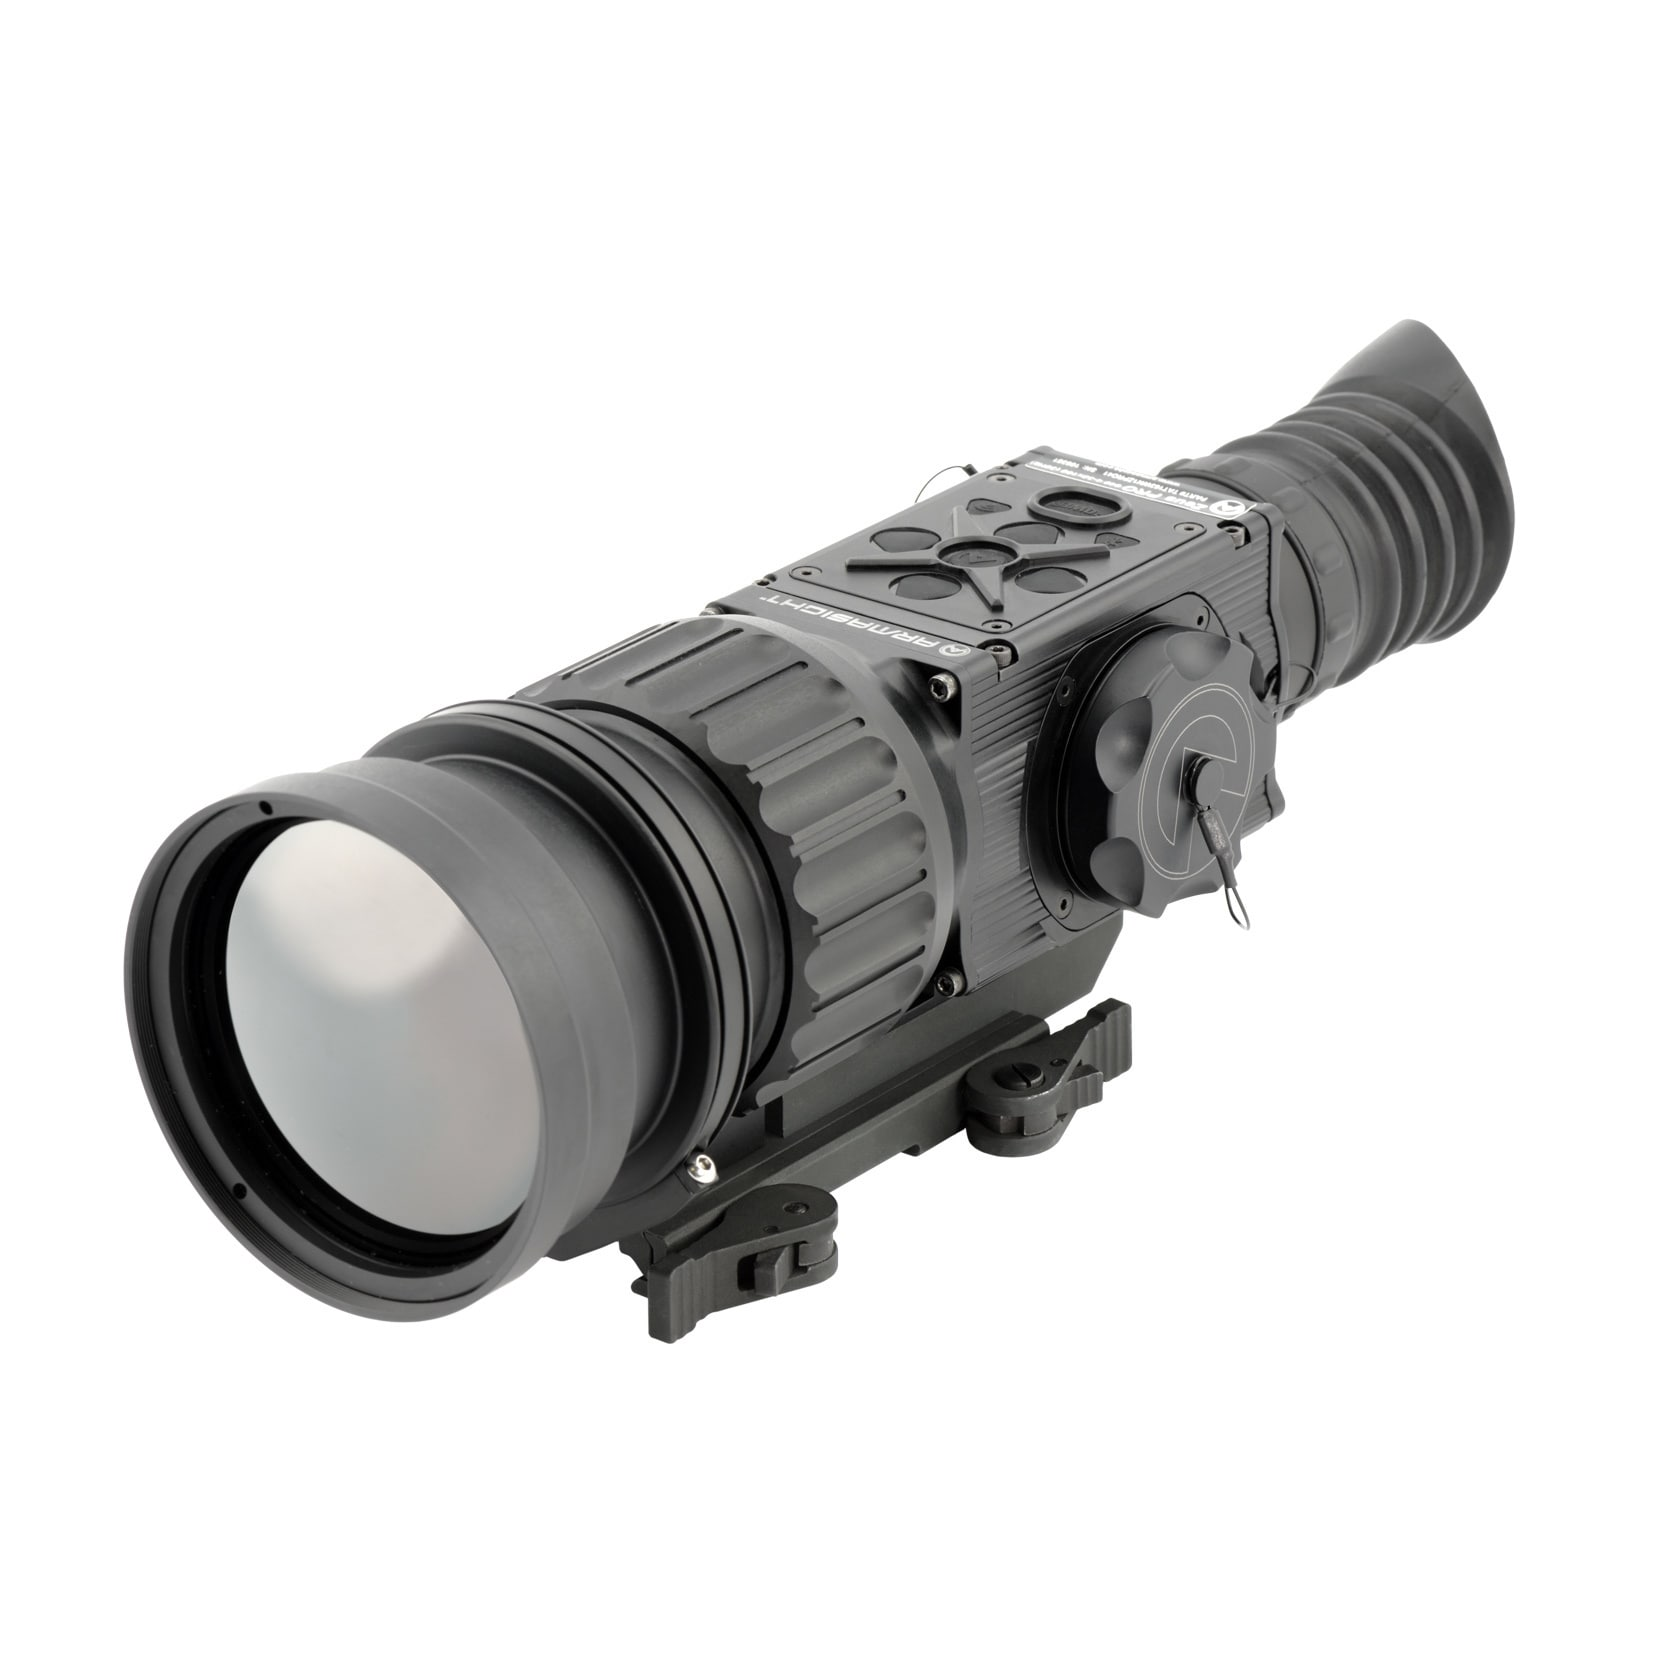 Armasight Zeus-Pro 336 8-32x100 (60 Hz) Thermal IMaging Weapon Sight FLIR Tau 2 Core 100mm Len by Overstock